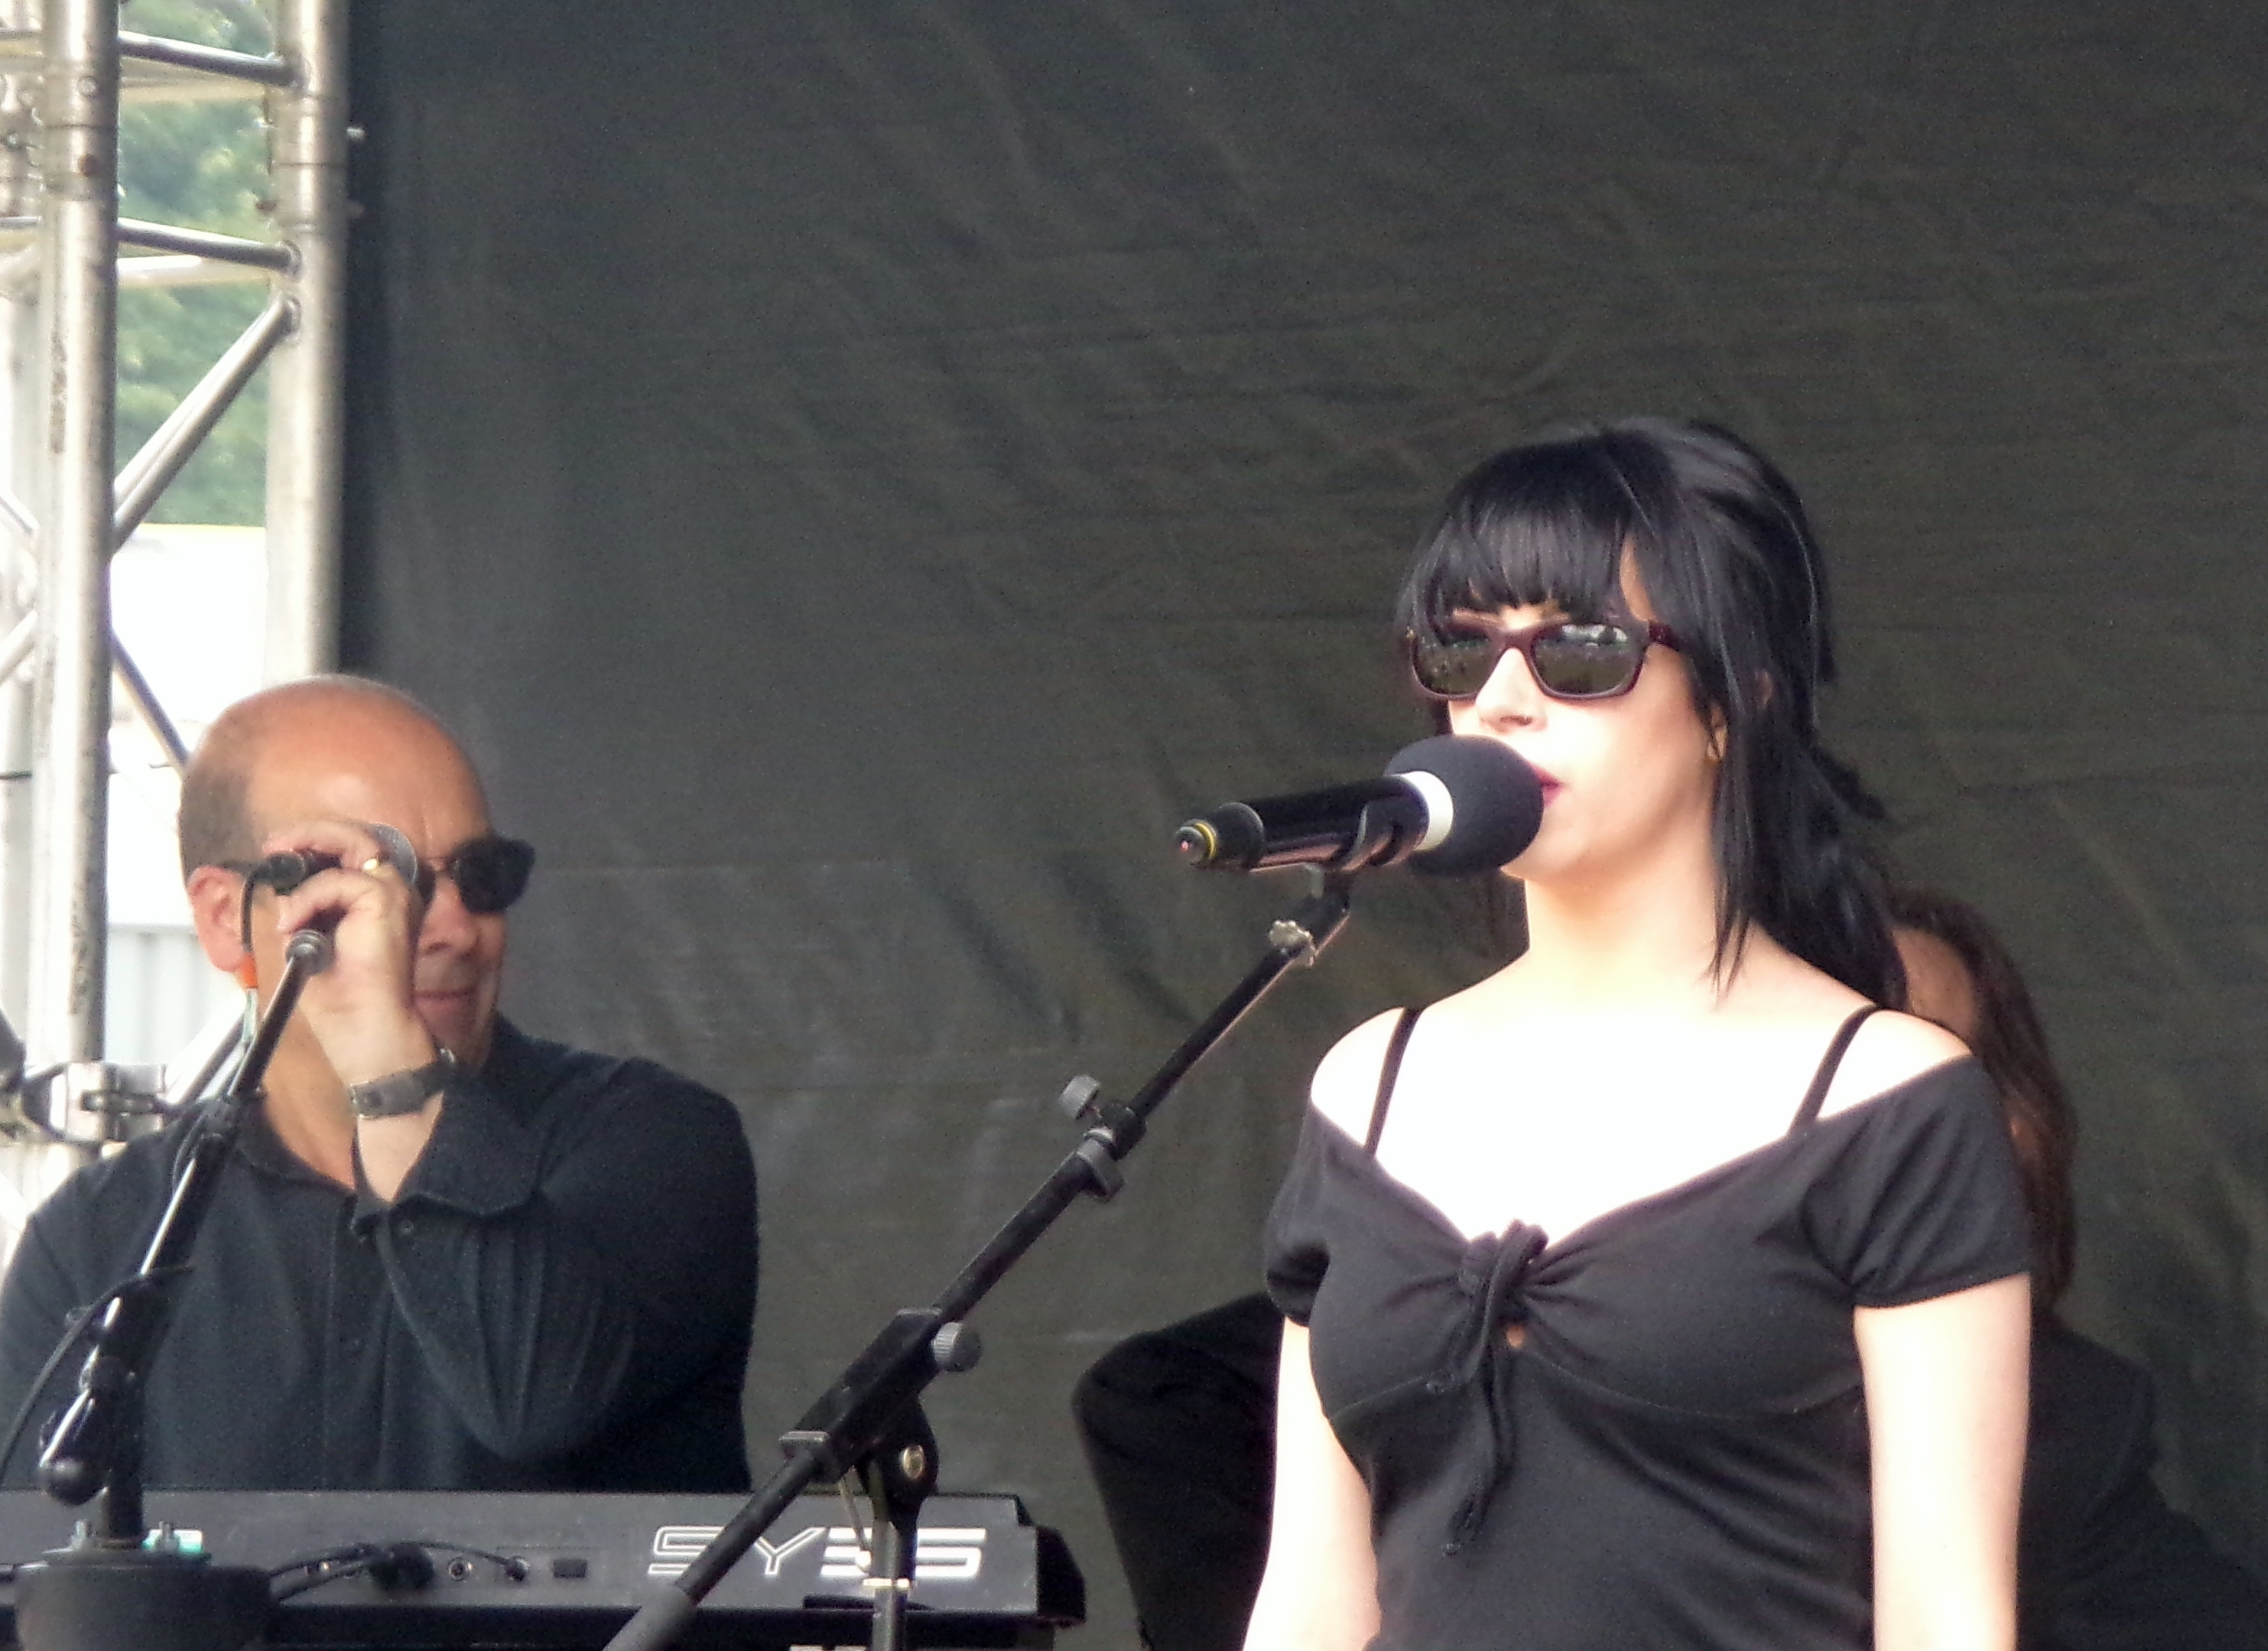 singer with sunglasses